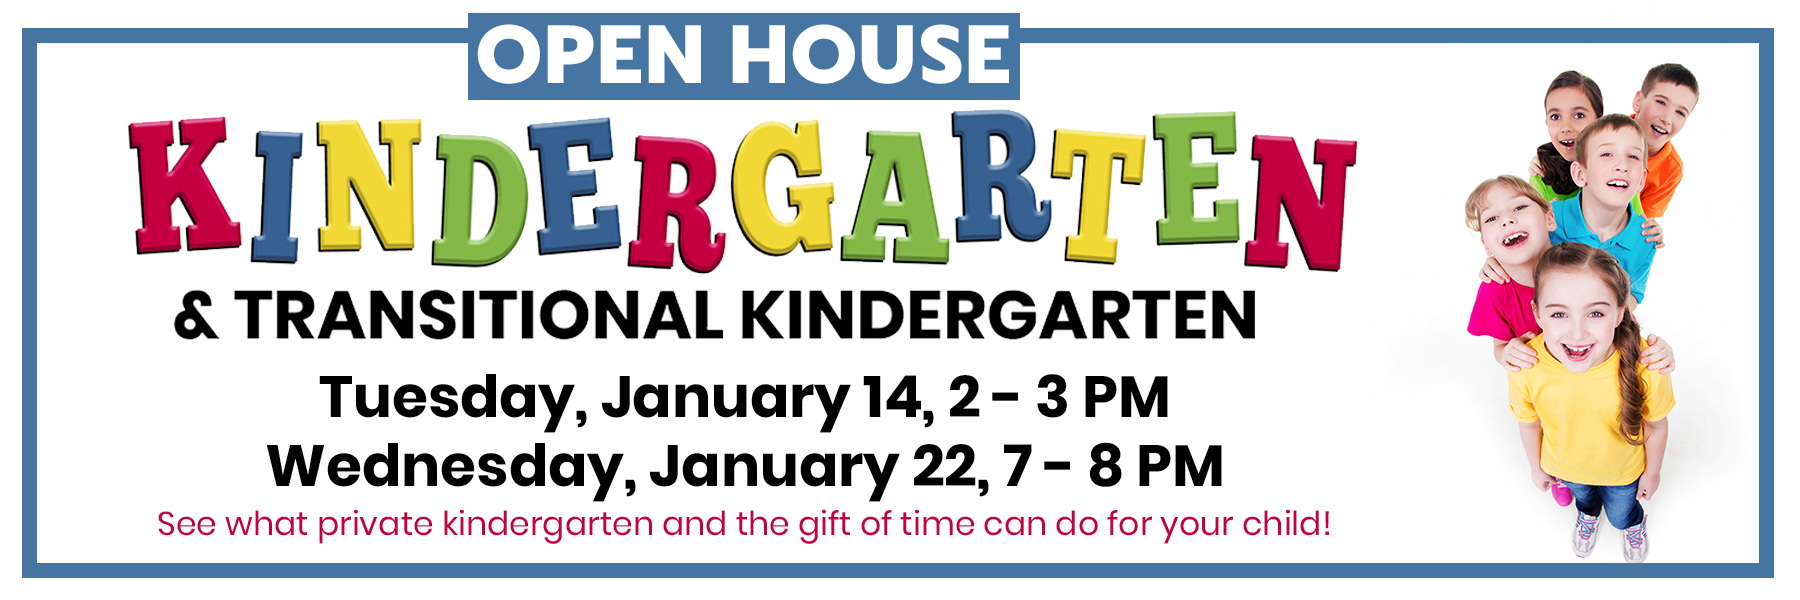 """<a href=""""https://www.barnerttemple.org/event/kindergartenopenhouse2020""""                                     target=""""_blank"""">                                                                 <span class=""""slider_title"""">                                     Kindergarten & Transitional Kindergarten Open House                                </span>                                                                 </a>                                                                                                                                                                                       <span class=""""slider_description"""">Two opportunities to learn about Barnert's unique Kindergarten and Transitional Kindergarten programs.  Our program is open to all, so come and see what Barnert can offer your child.  Click above to learn more and to RSVP.</span>"""